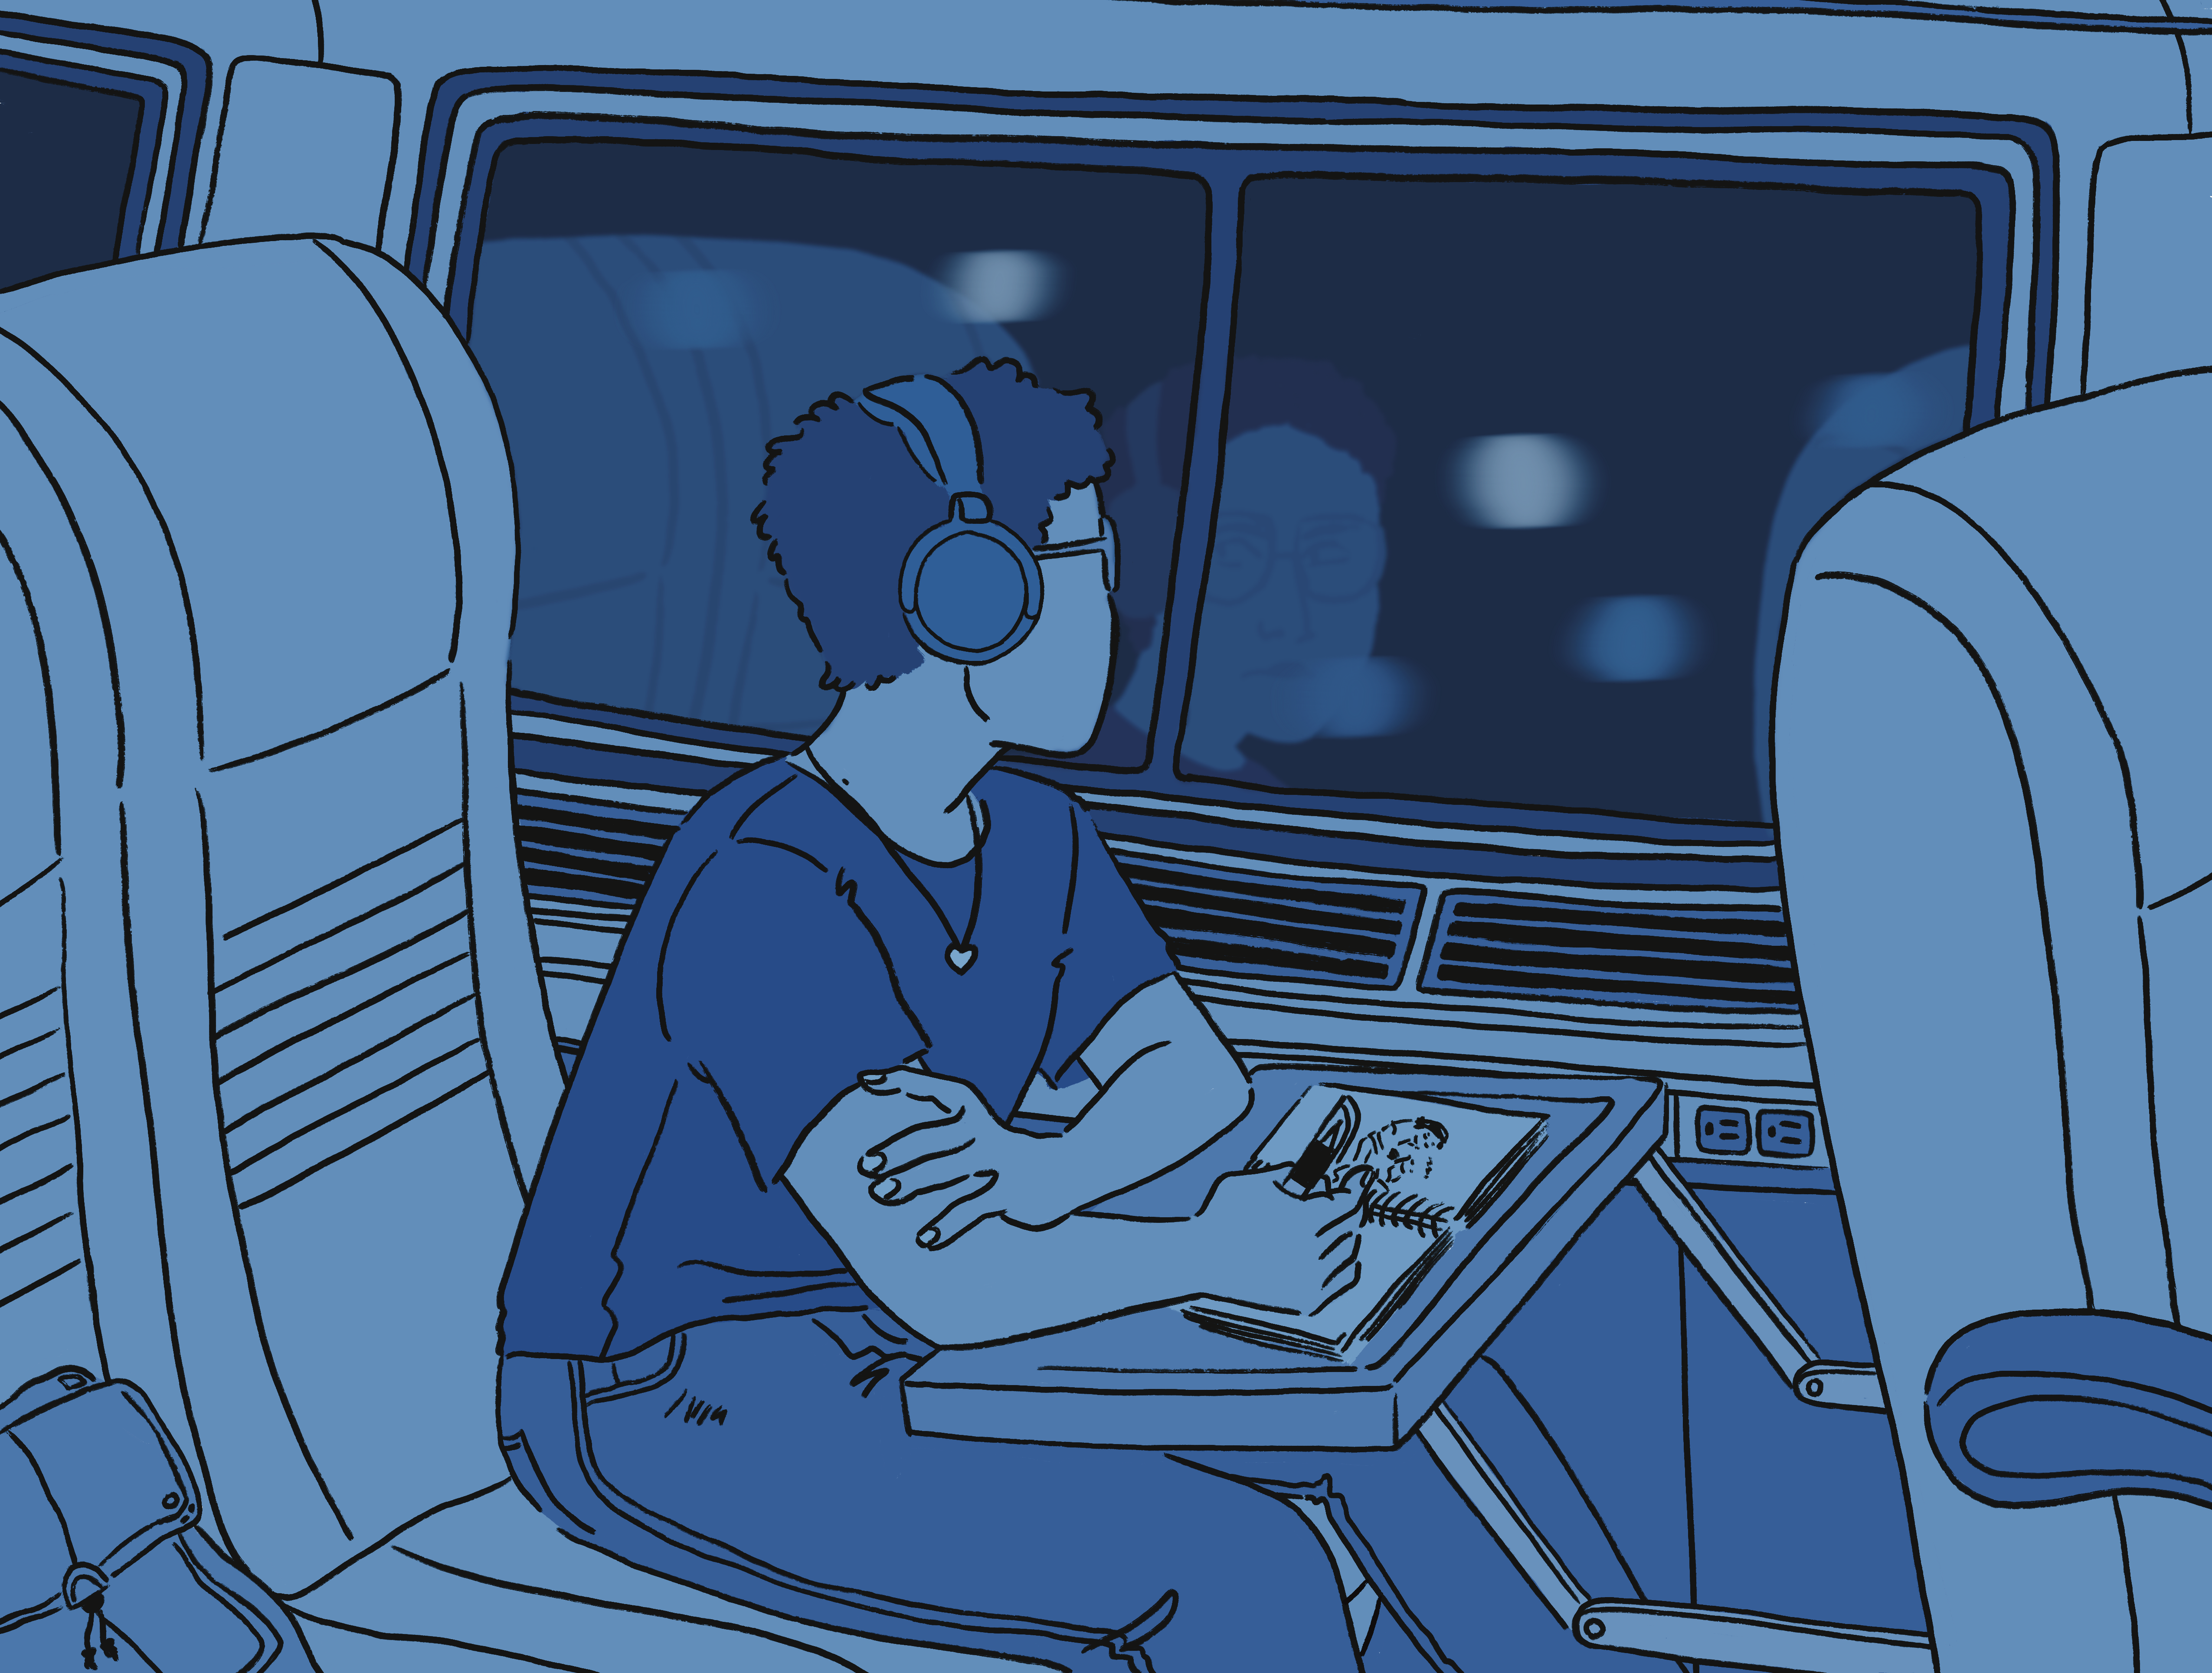 A drawing of a person with short wearing jeans and a plain short sleeved shirt, sitting in a train. The scene takes place at night. There is a bag sitting in the seat next to them. They are looking out the large, dark window, where there are lights moving